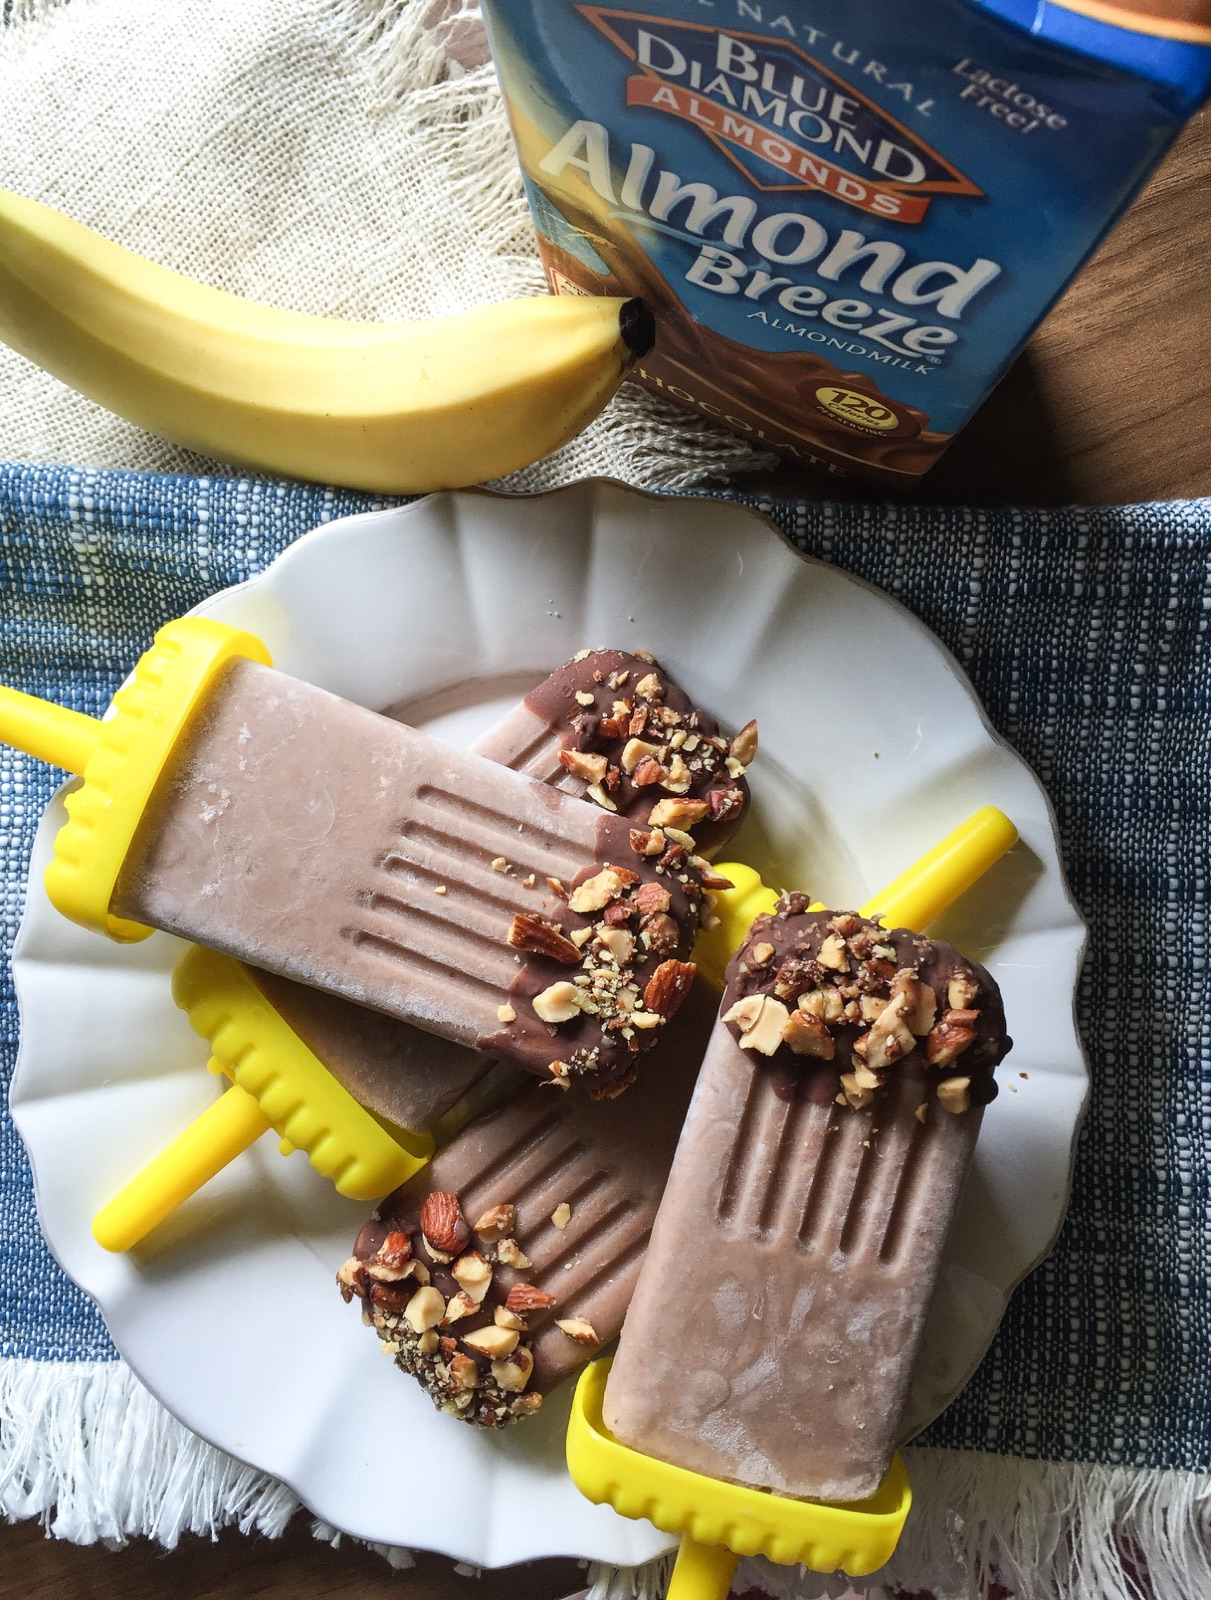 Easy as Breeze Chocolate Ice Pops